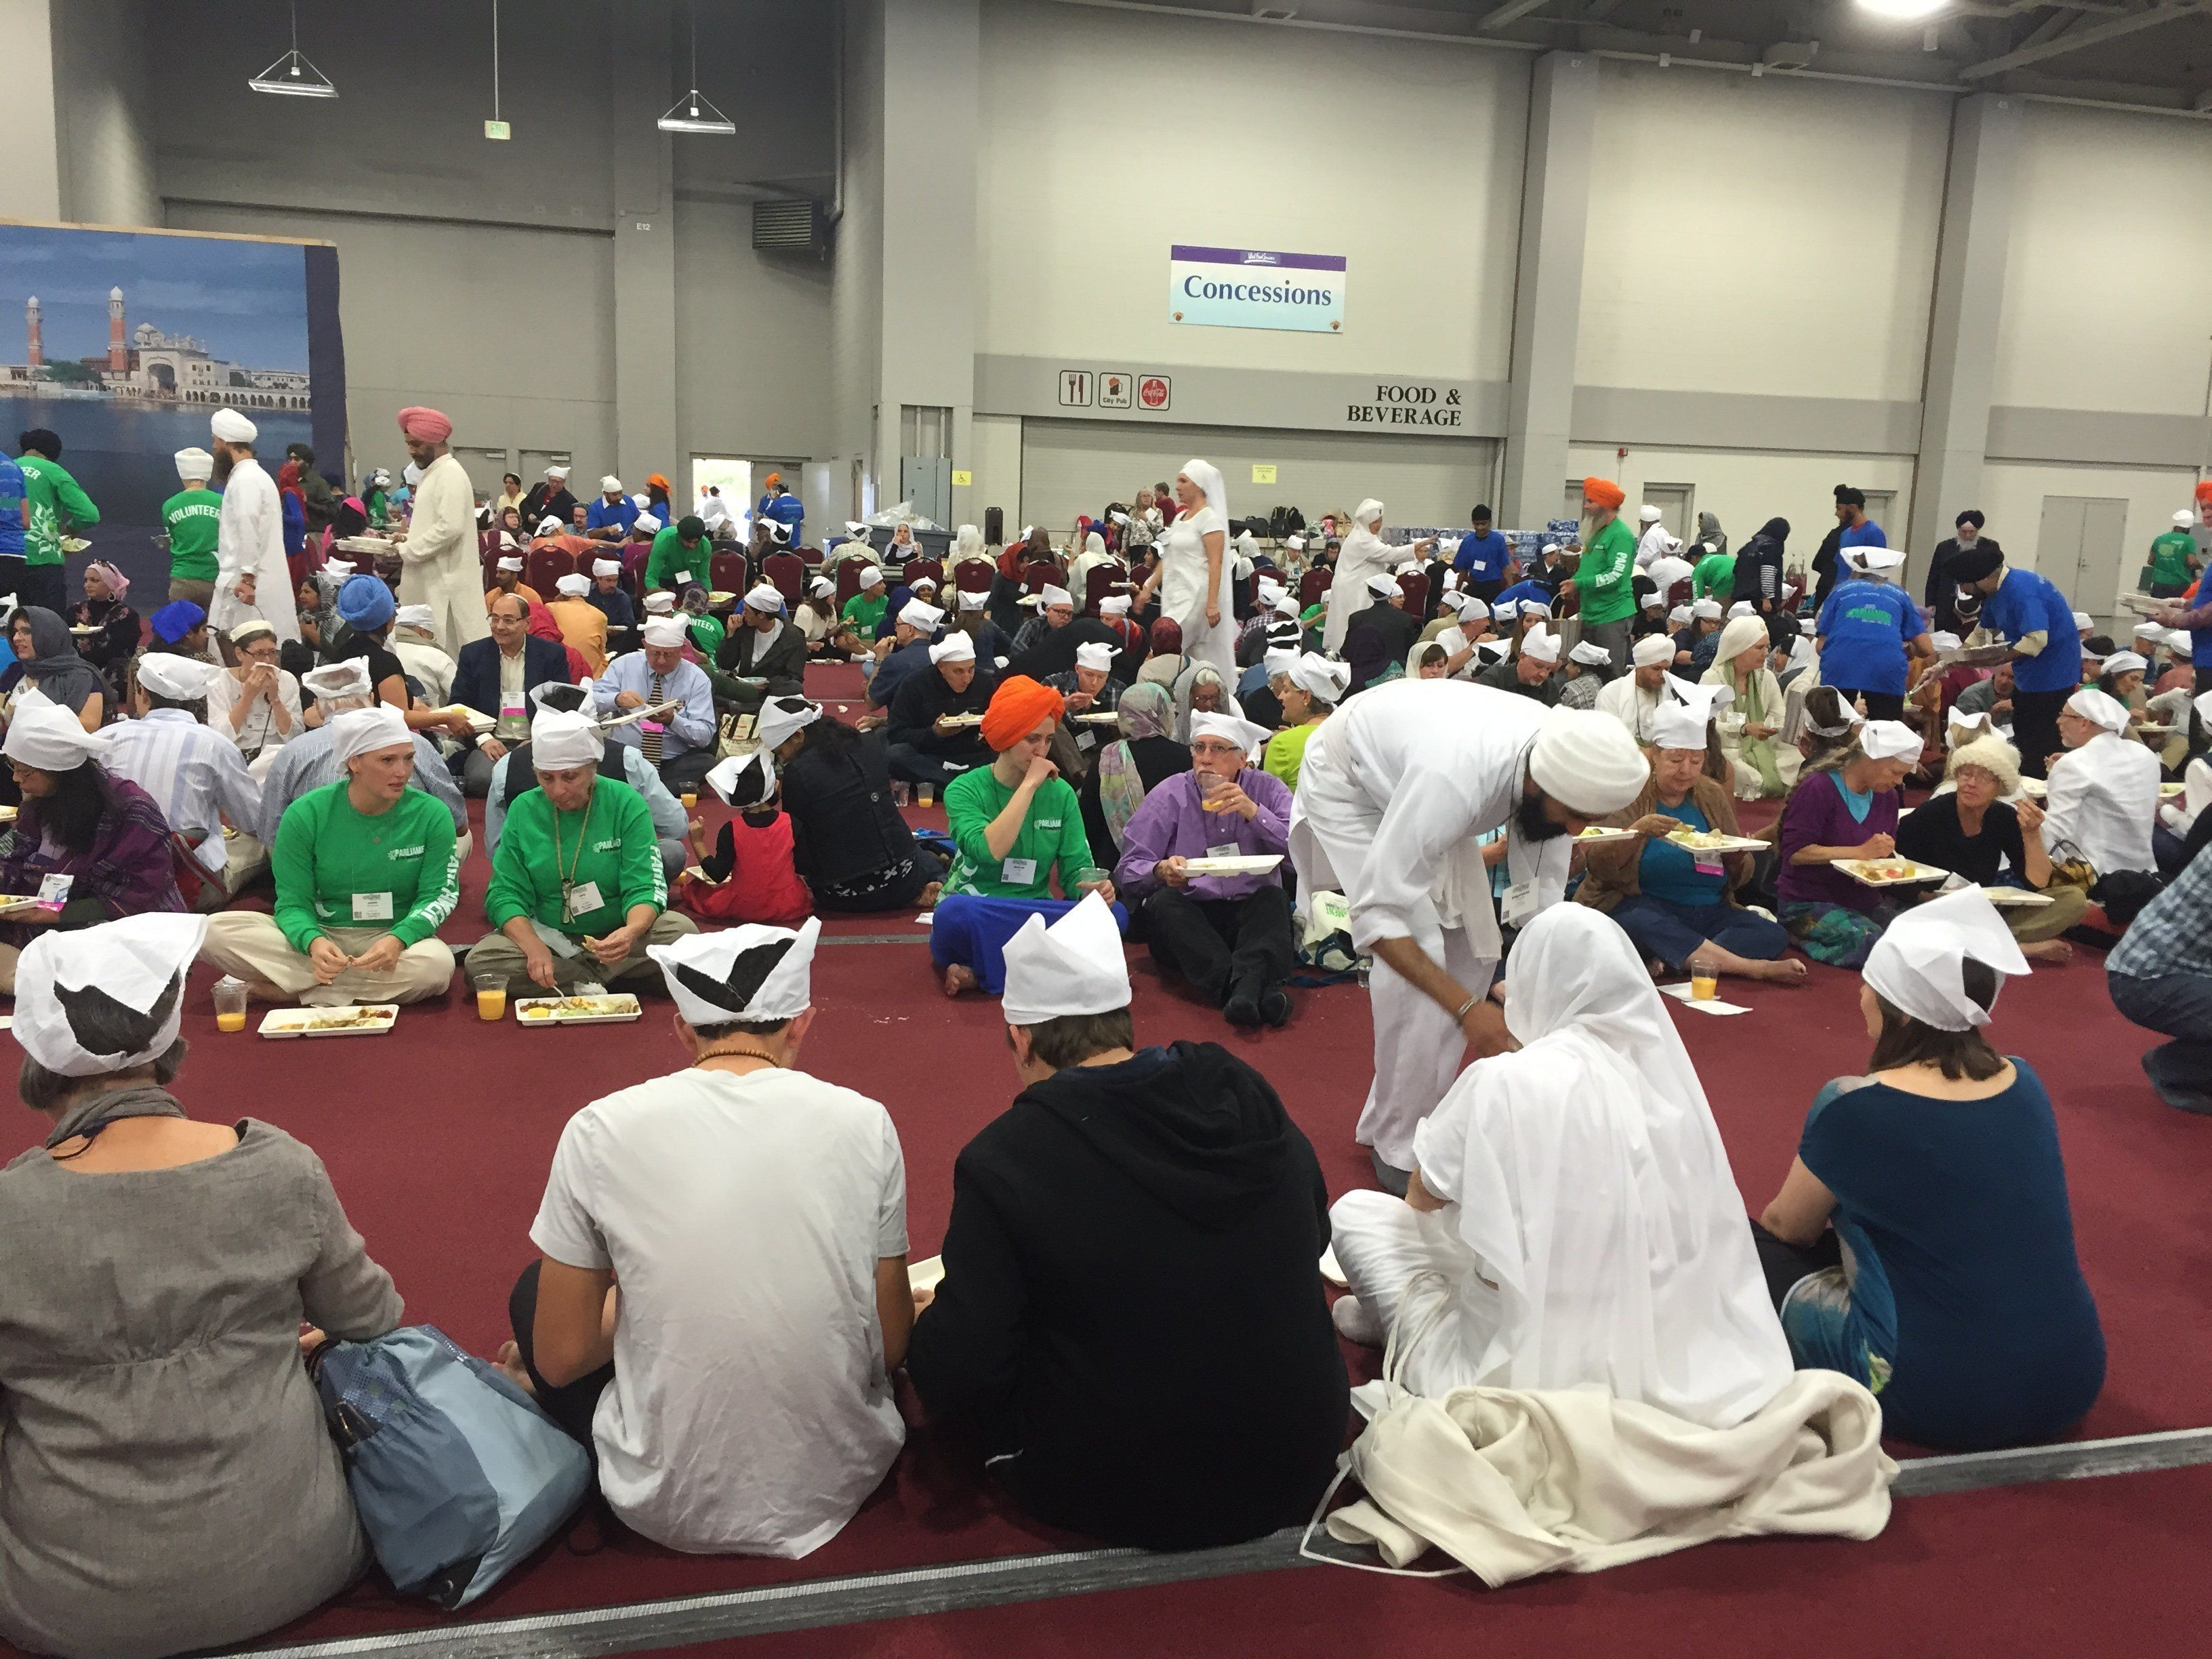 Thousandspartook of afree langar meal on Saturday, Oct. 17, 2015, during the Parliament of the World's Religions.